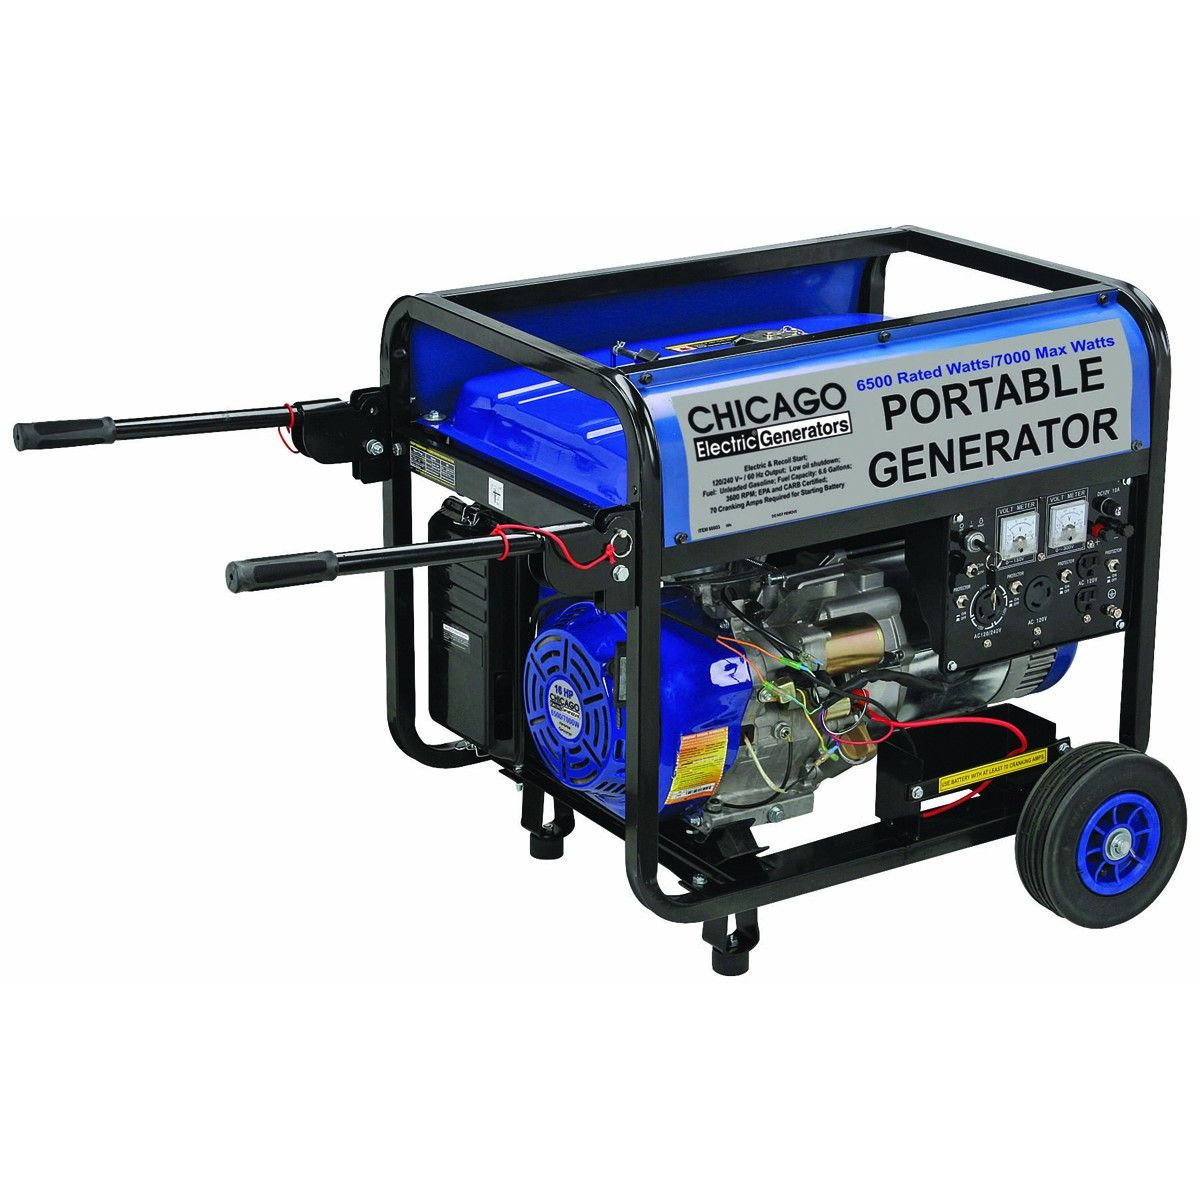 Harbor Freight Generators Portable : Chicago electric generators hp rated watts